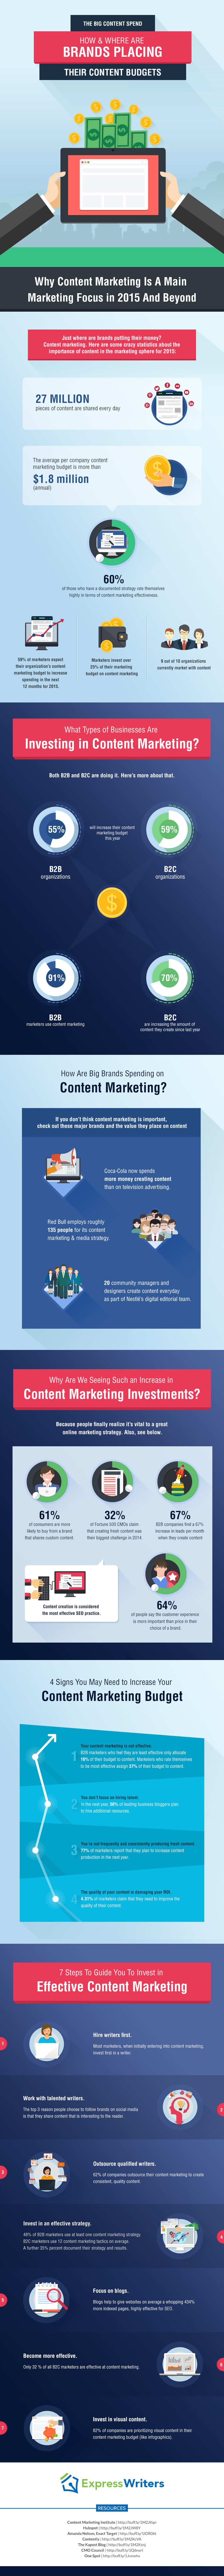 The-Big-Content-Spend-How-Where-Are-Brands-Placing-Their-Content-Budgets